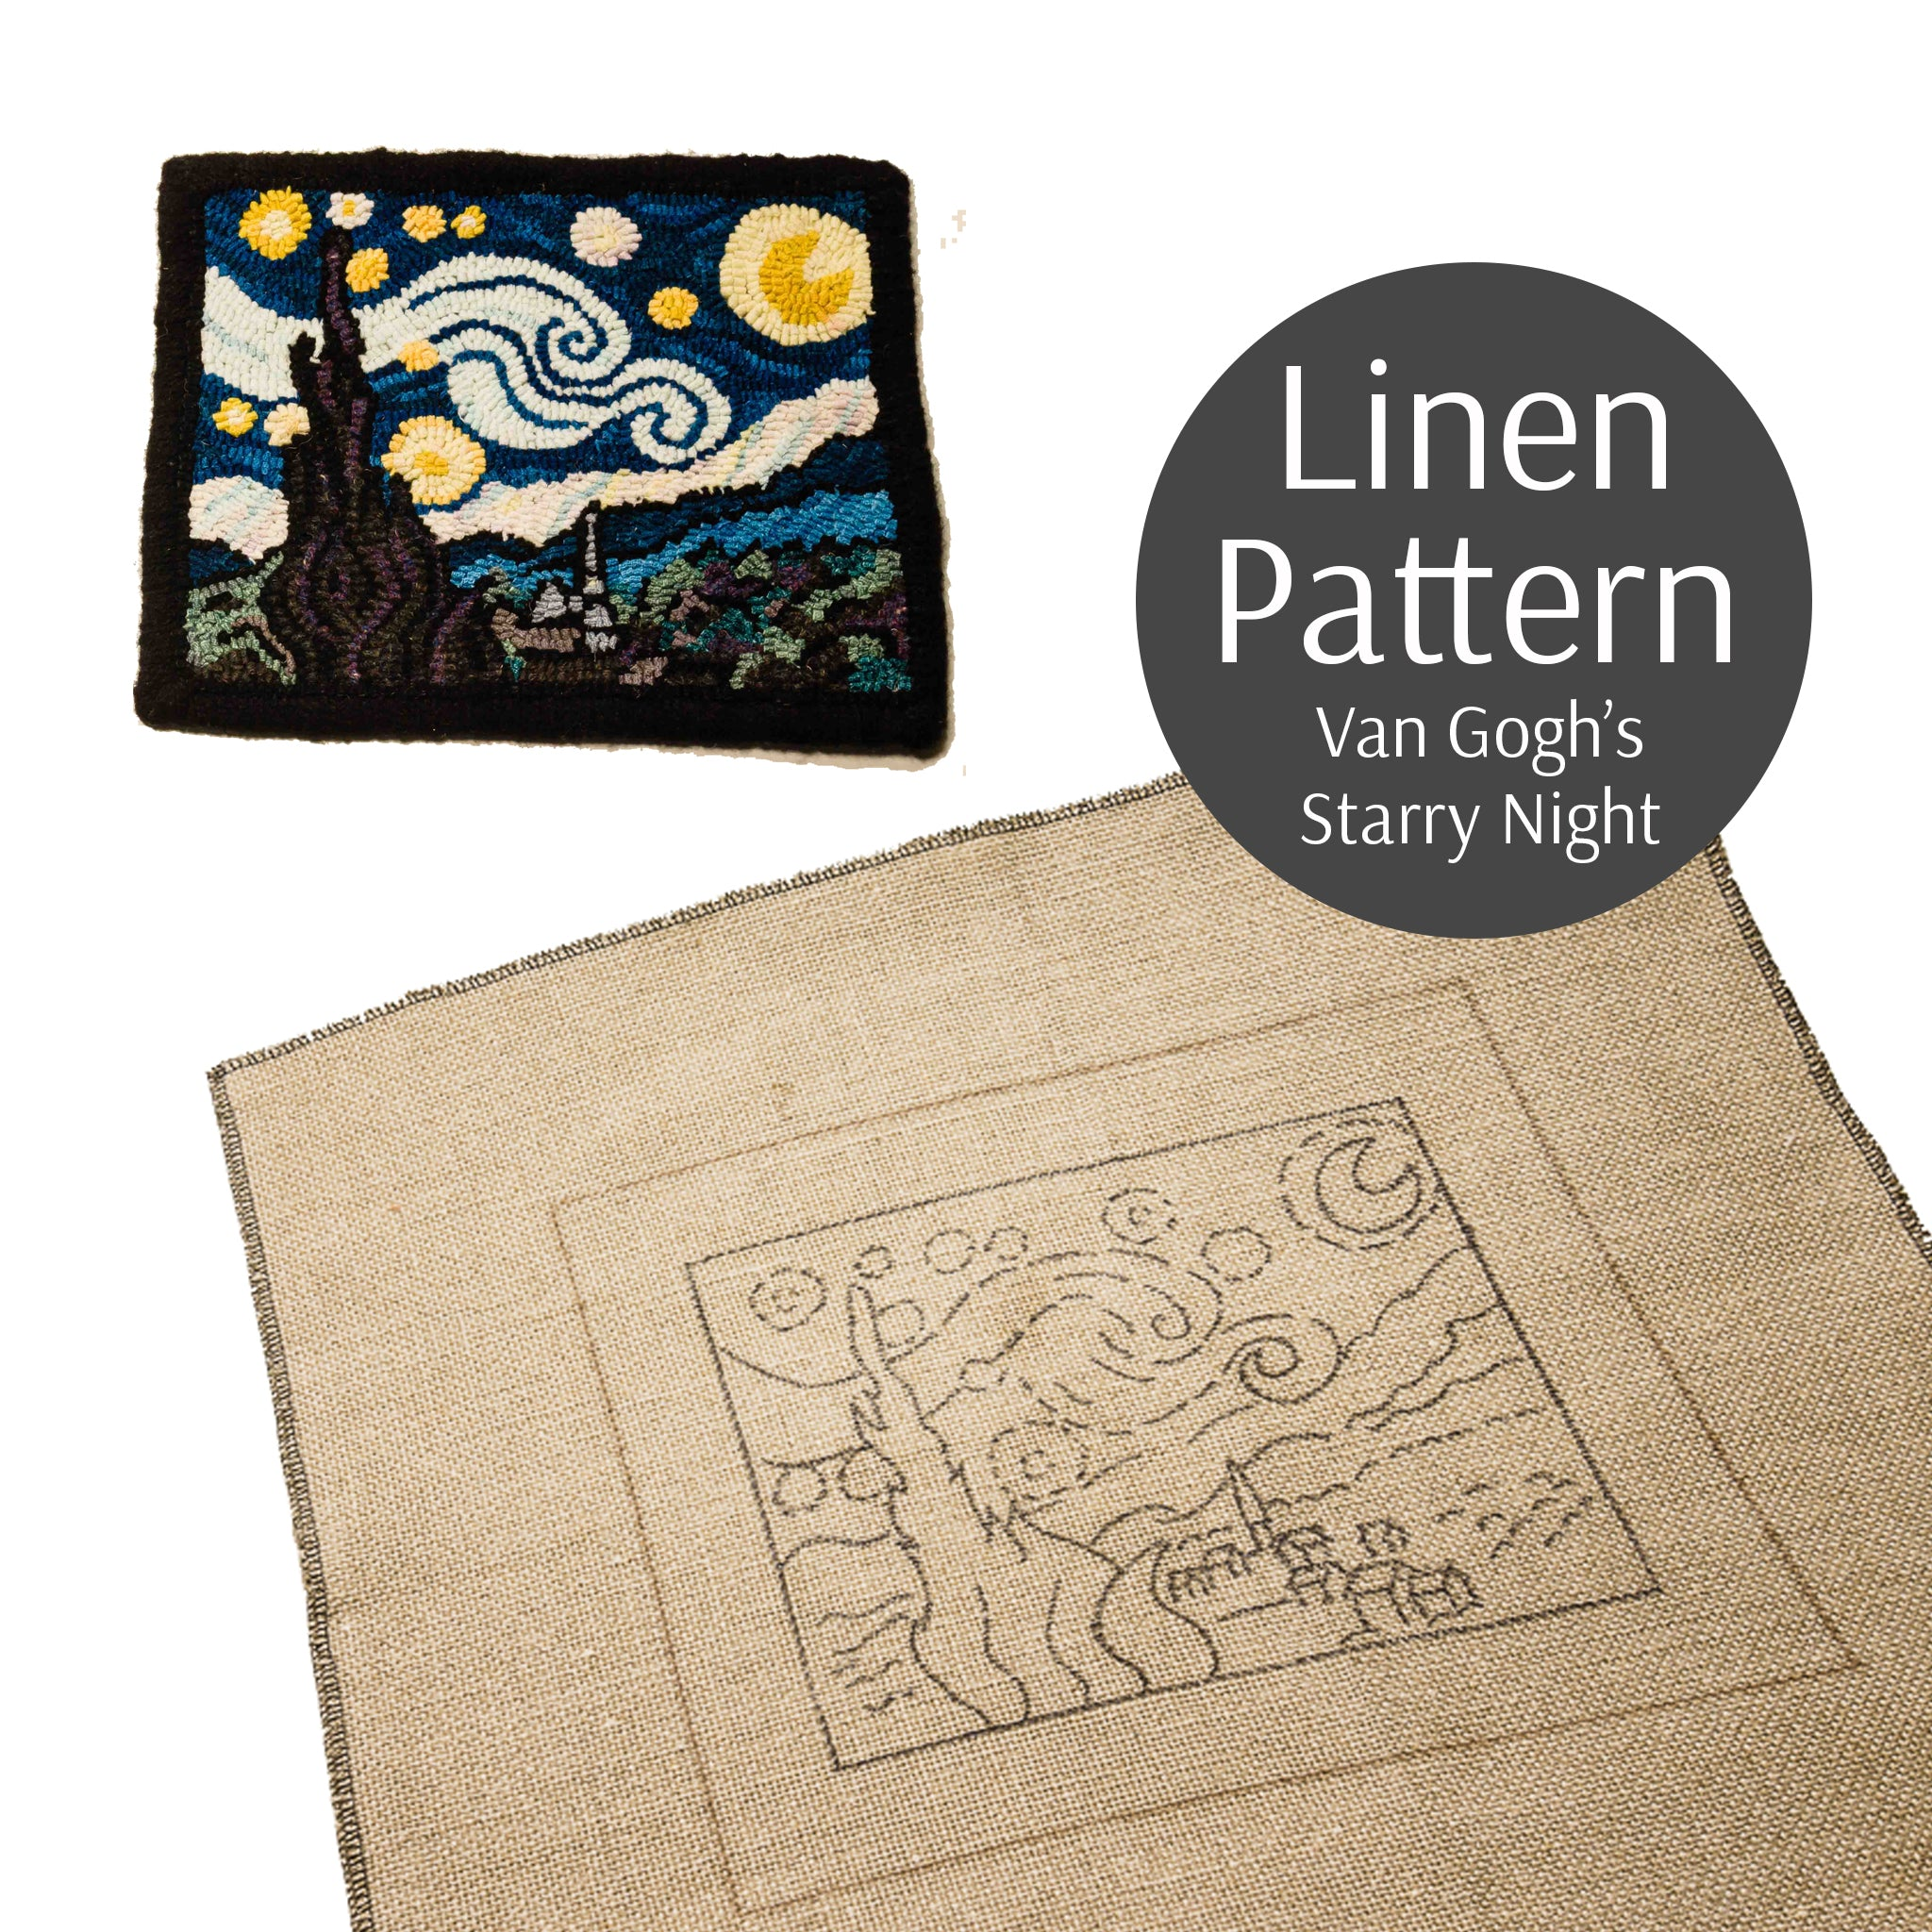 Van Gogh S Starry Night Linen Pattern Loopy Wool Supply